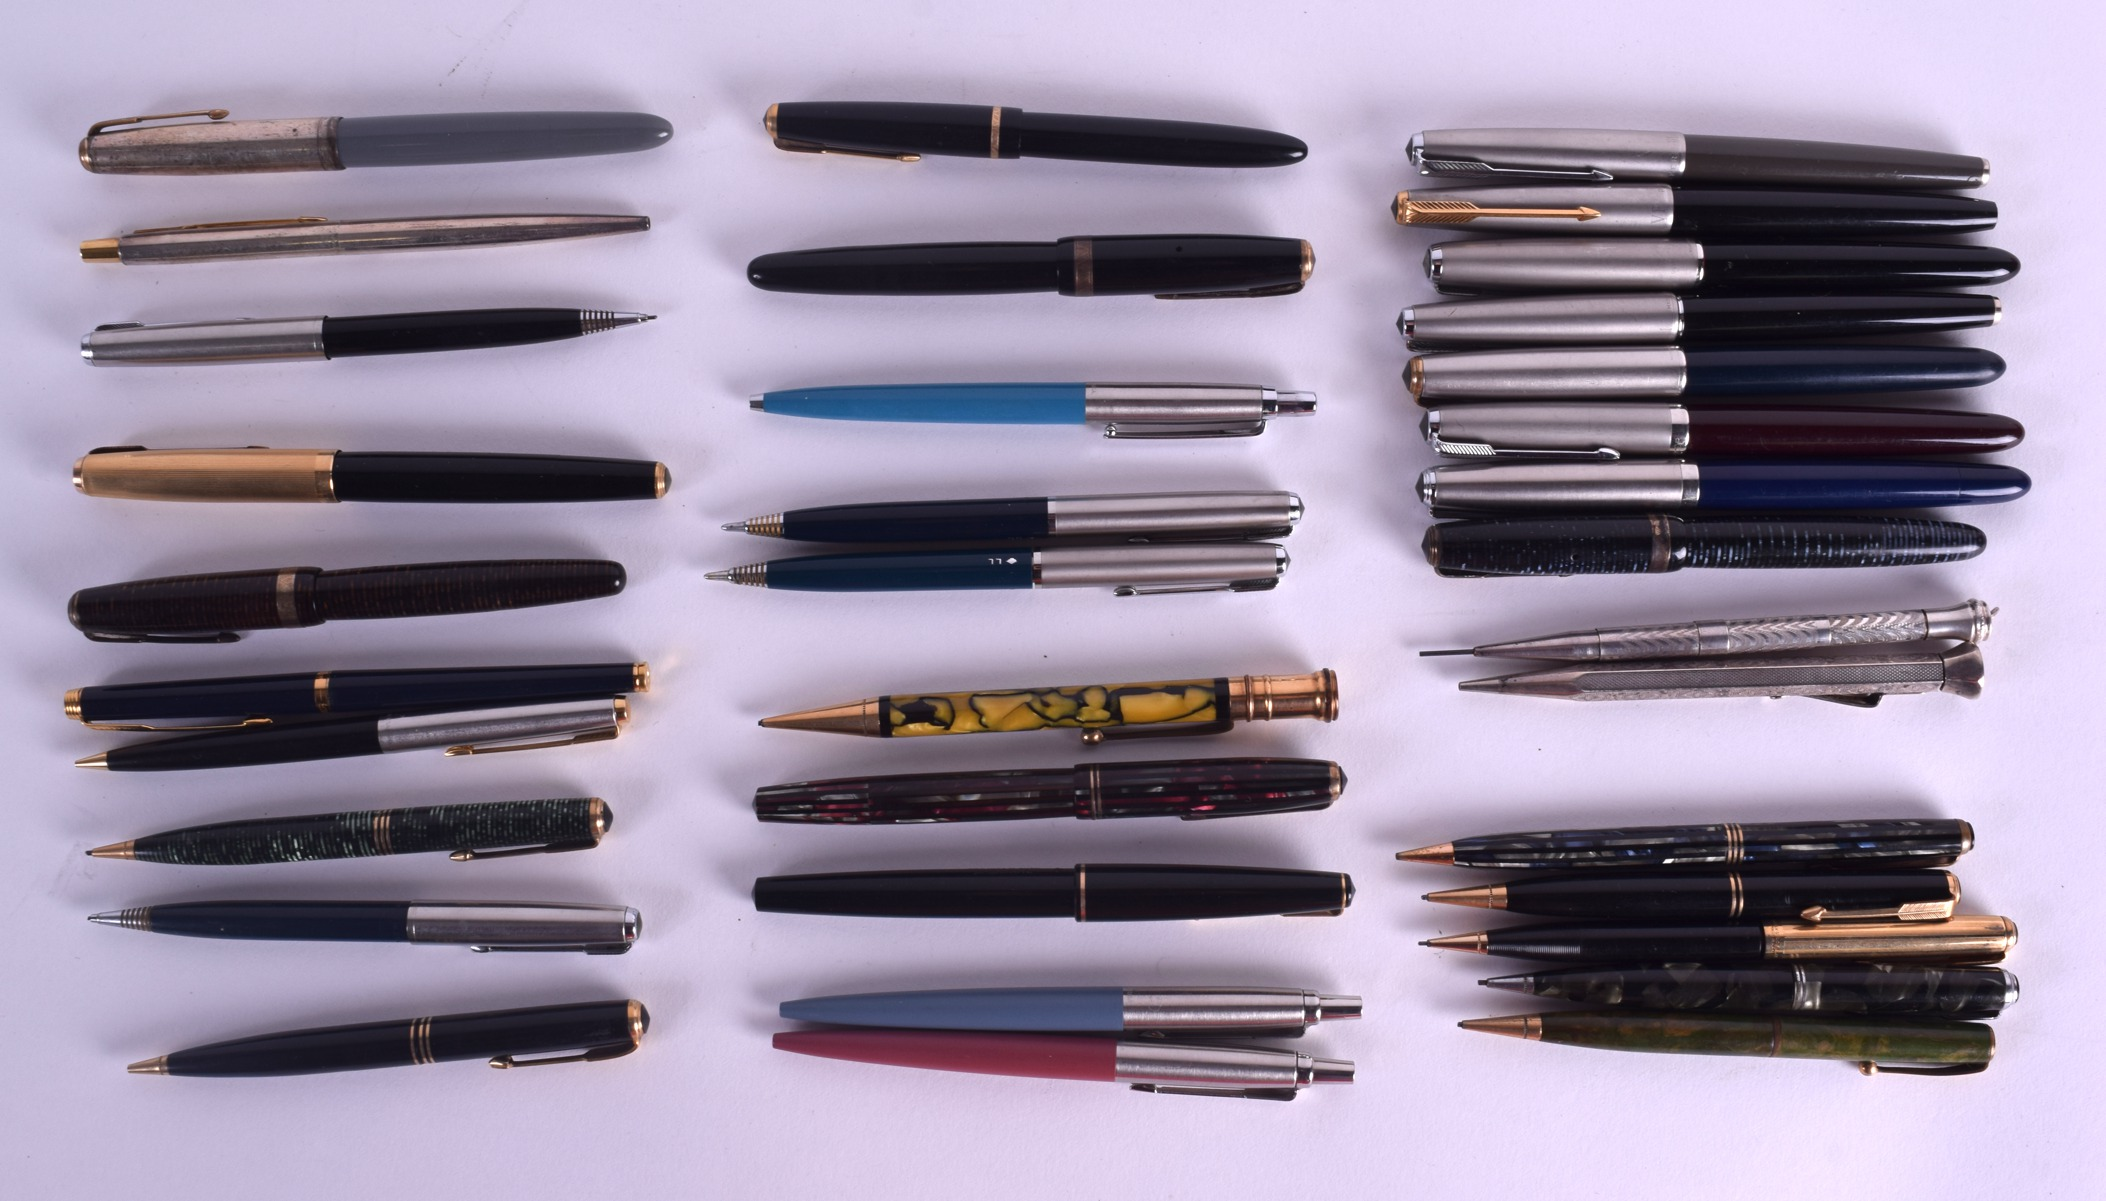 Lot 868 - A COLLECTION OF PARKER PENS including mechanical pencils, fountain pens & ball points, one with 14